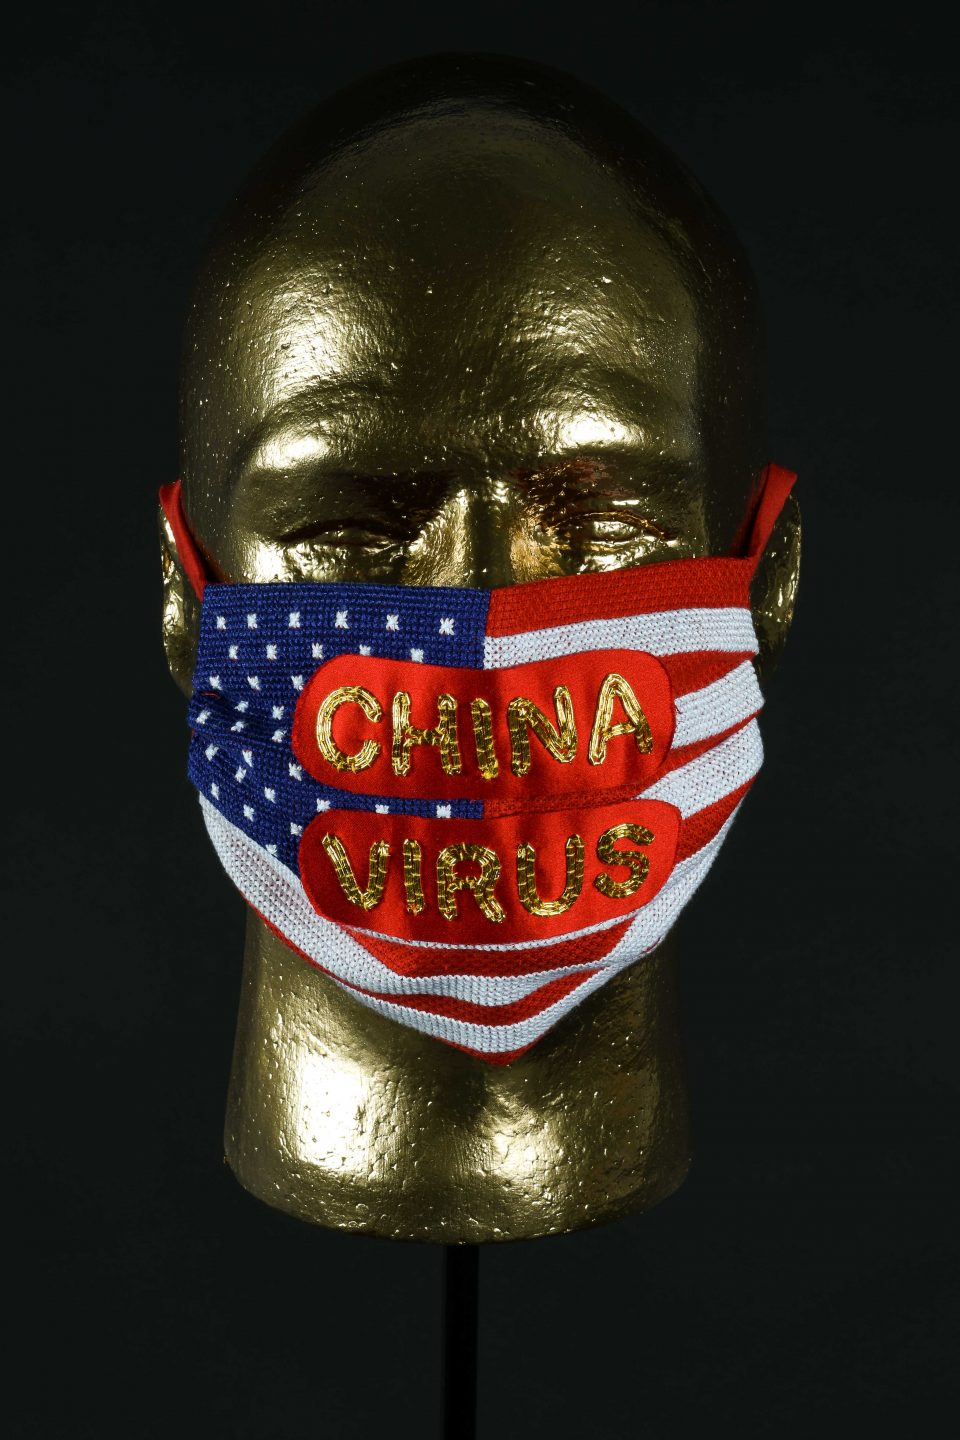 Golden mannequin head with a handstiched mask featuring the American flag overlaid with red satin with China Virus stitched on top.